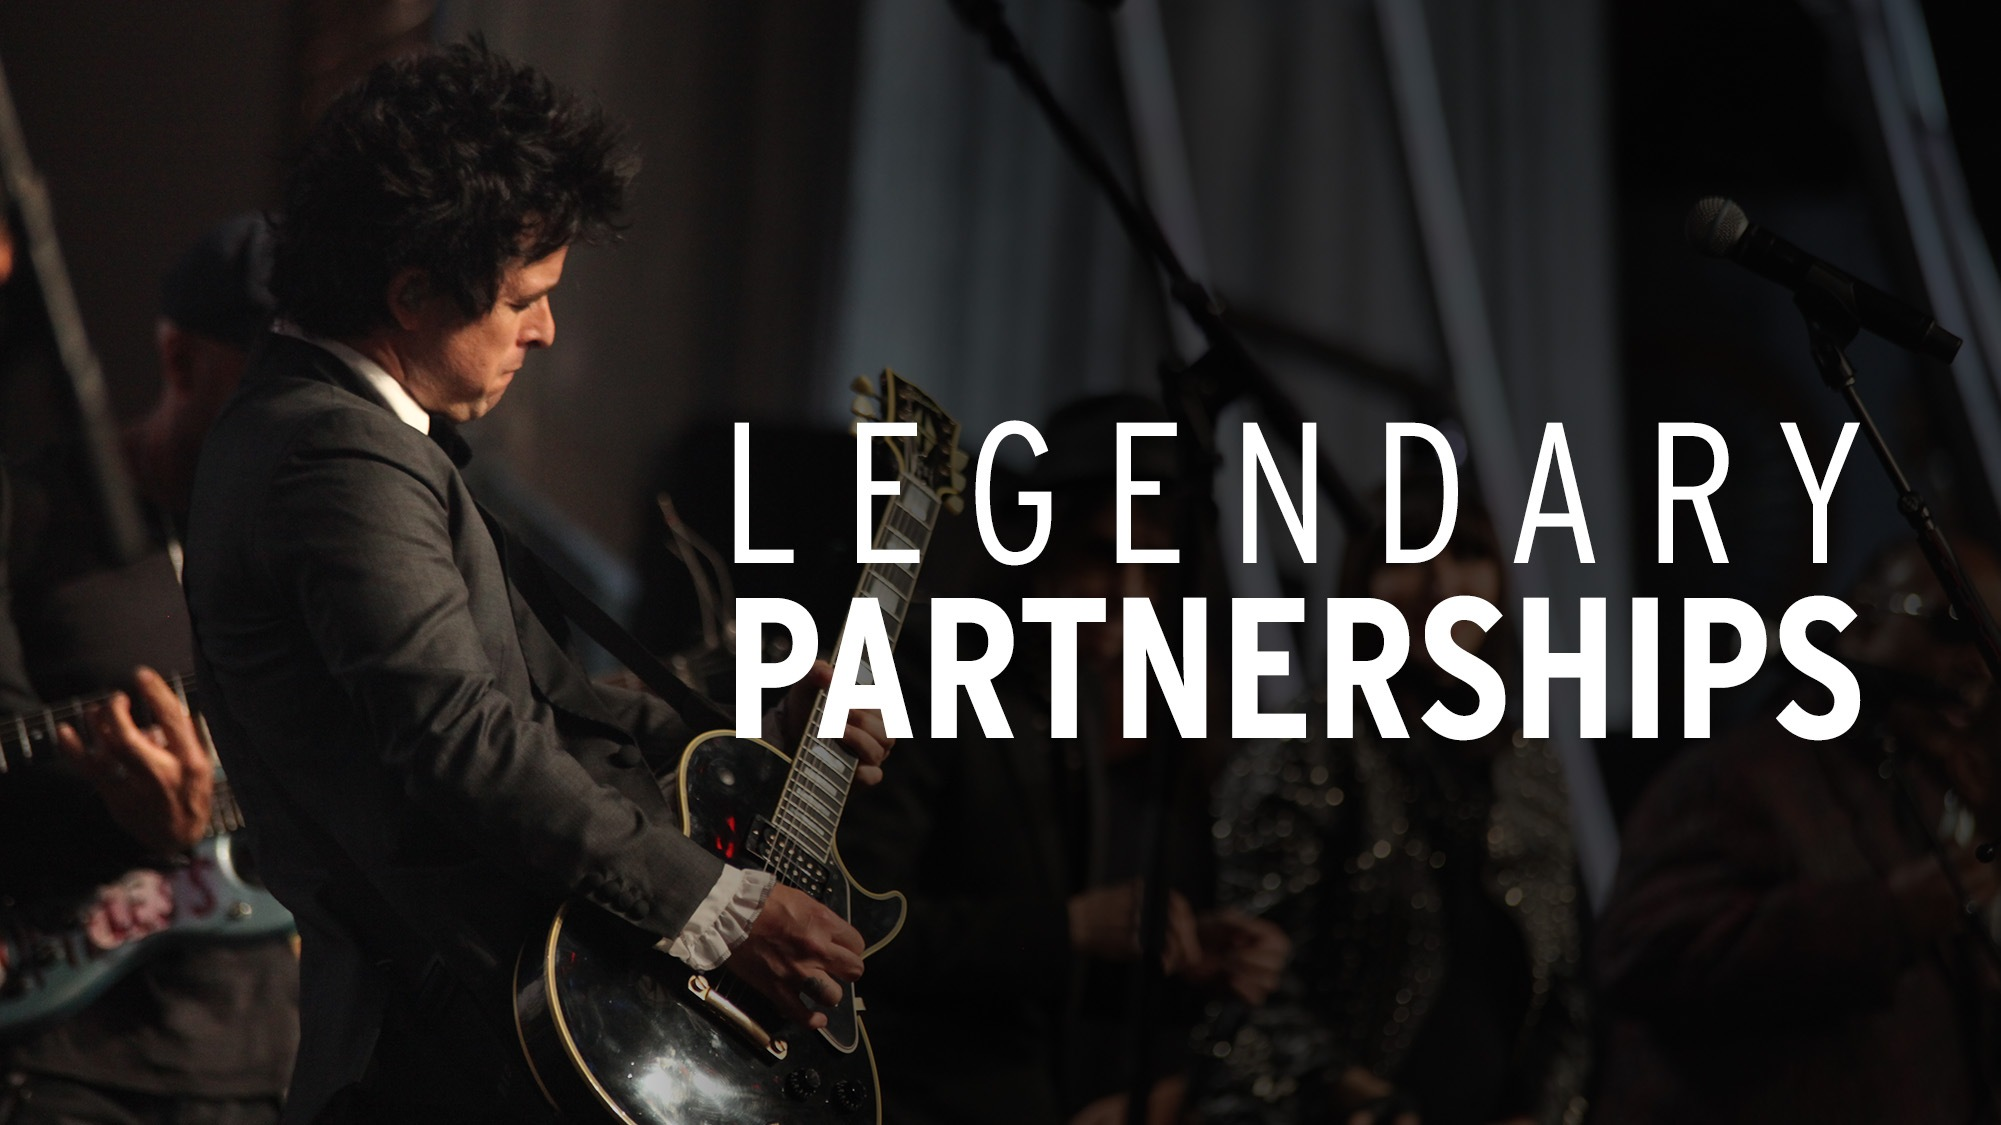 Klipsch Legendary Partnerships